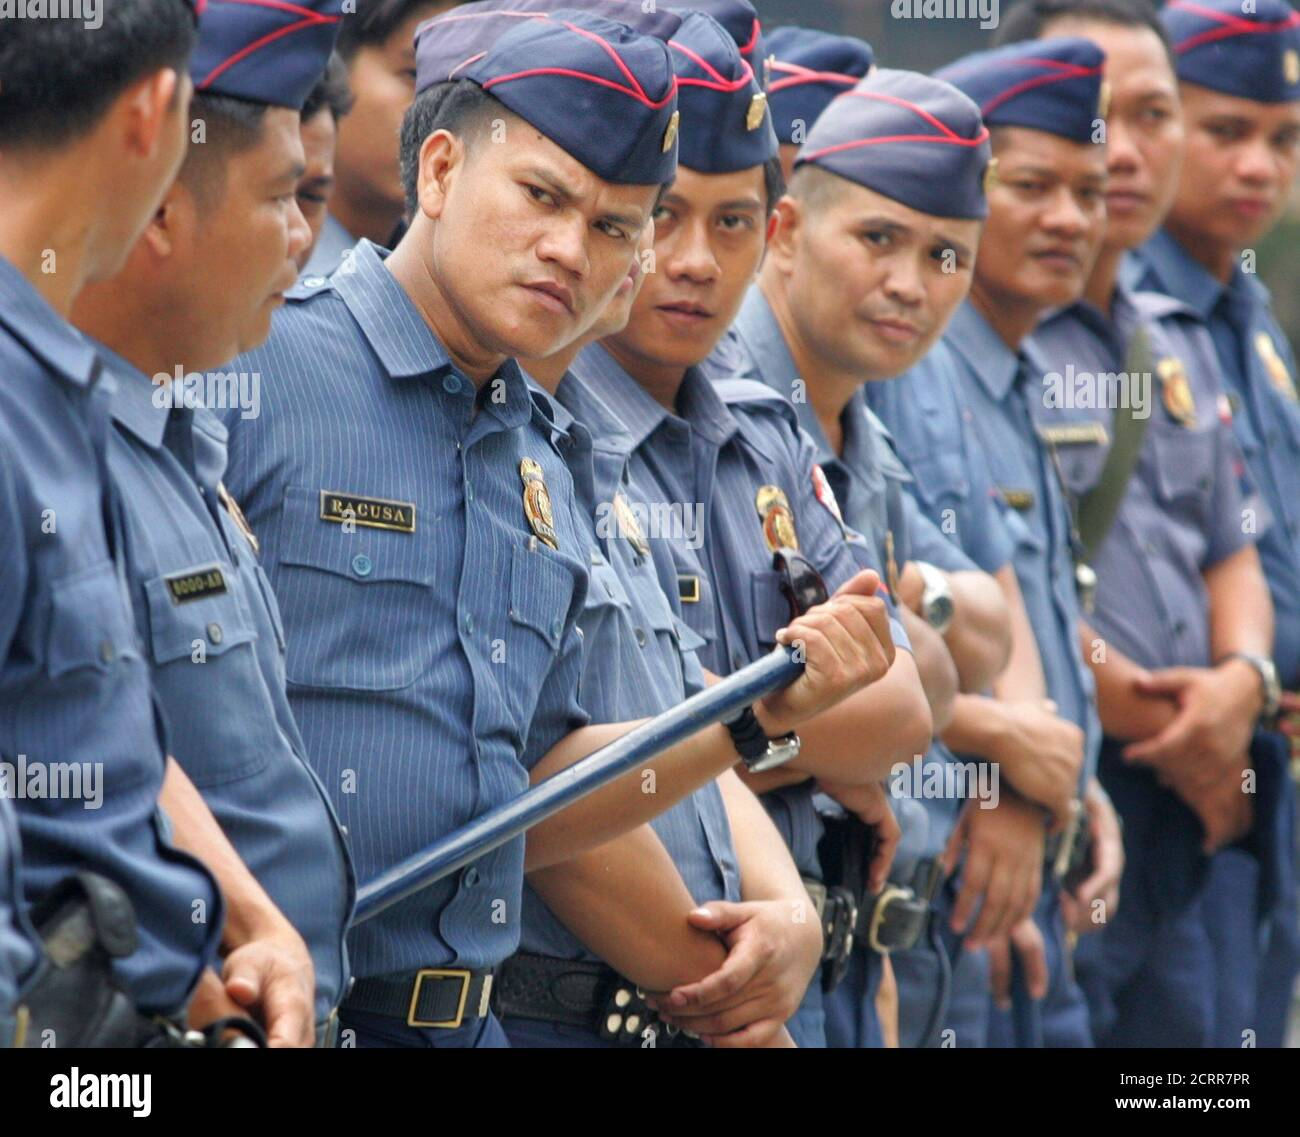 Filipino police monitor an anti-Arroyo march which converged at the EDSA (Epifanio de los Santos Avenue) shrine in Manila July 23, 2005. The shrine is the site of the 1986 and 2000 People Power uprising. President Gloria Macapagal Arroyo, who is facing vote-rigging accusations, is scheduled to give her state-of-the-nation address on July 25. REUTERS/Adrees Latif  AL/CCK Stock Photo